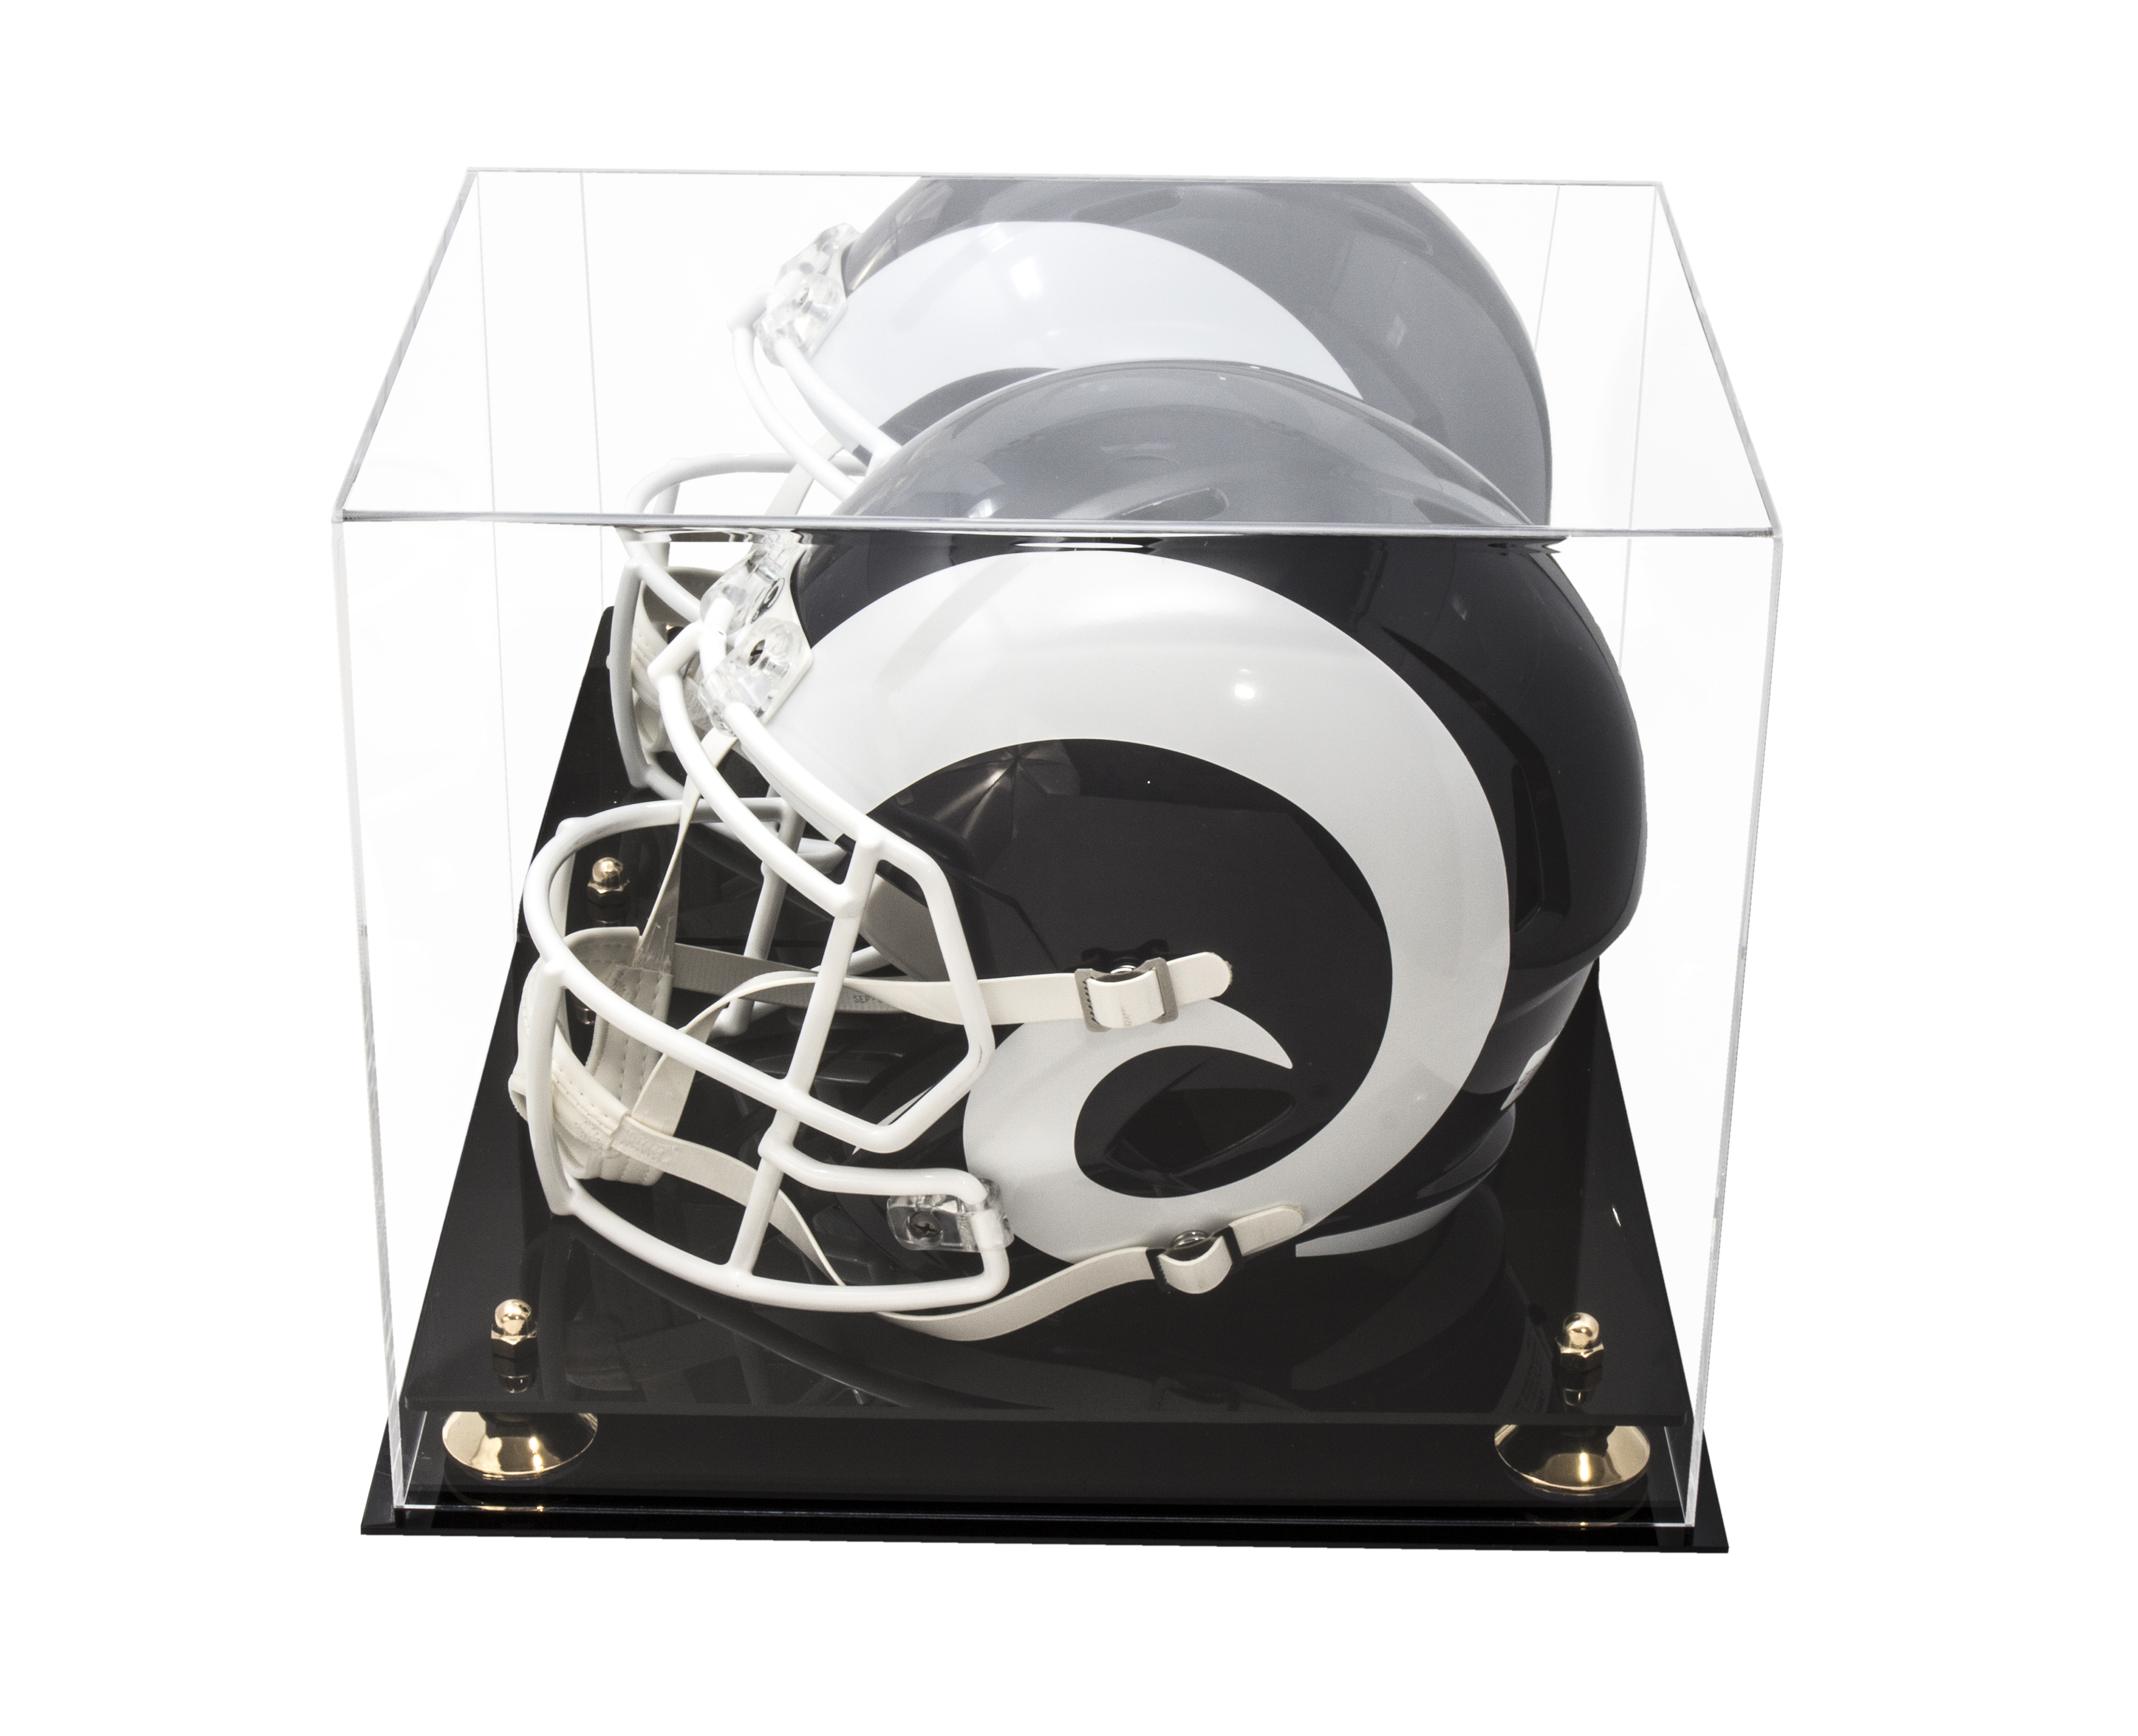 c117b1226f6 Details about Full Size Football Helmet Acrylic Display Case-Mirror   Gold  Risers (A002-GR)